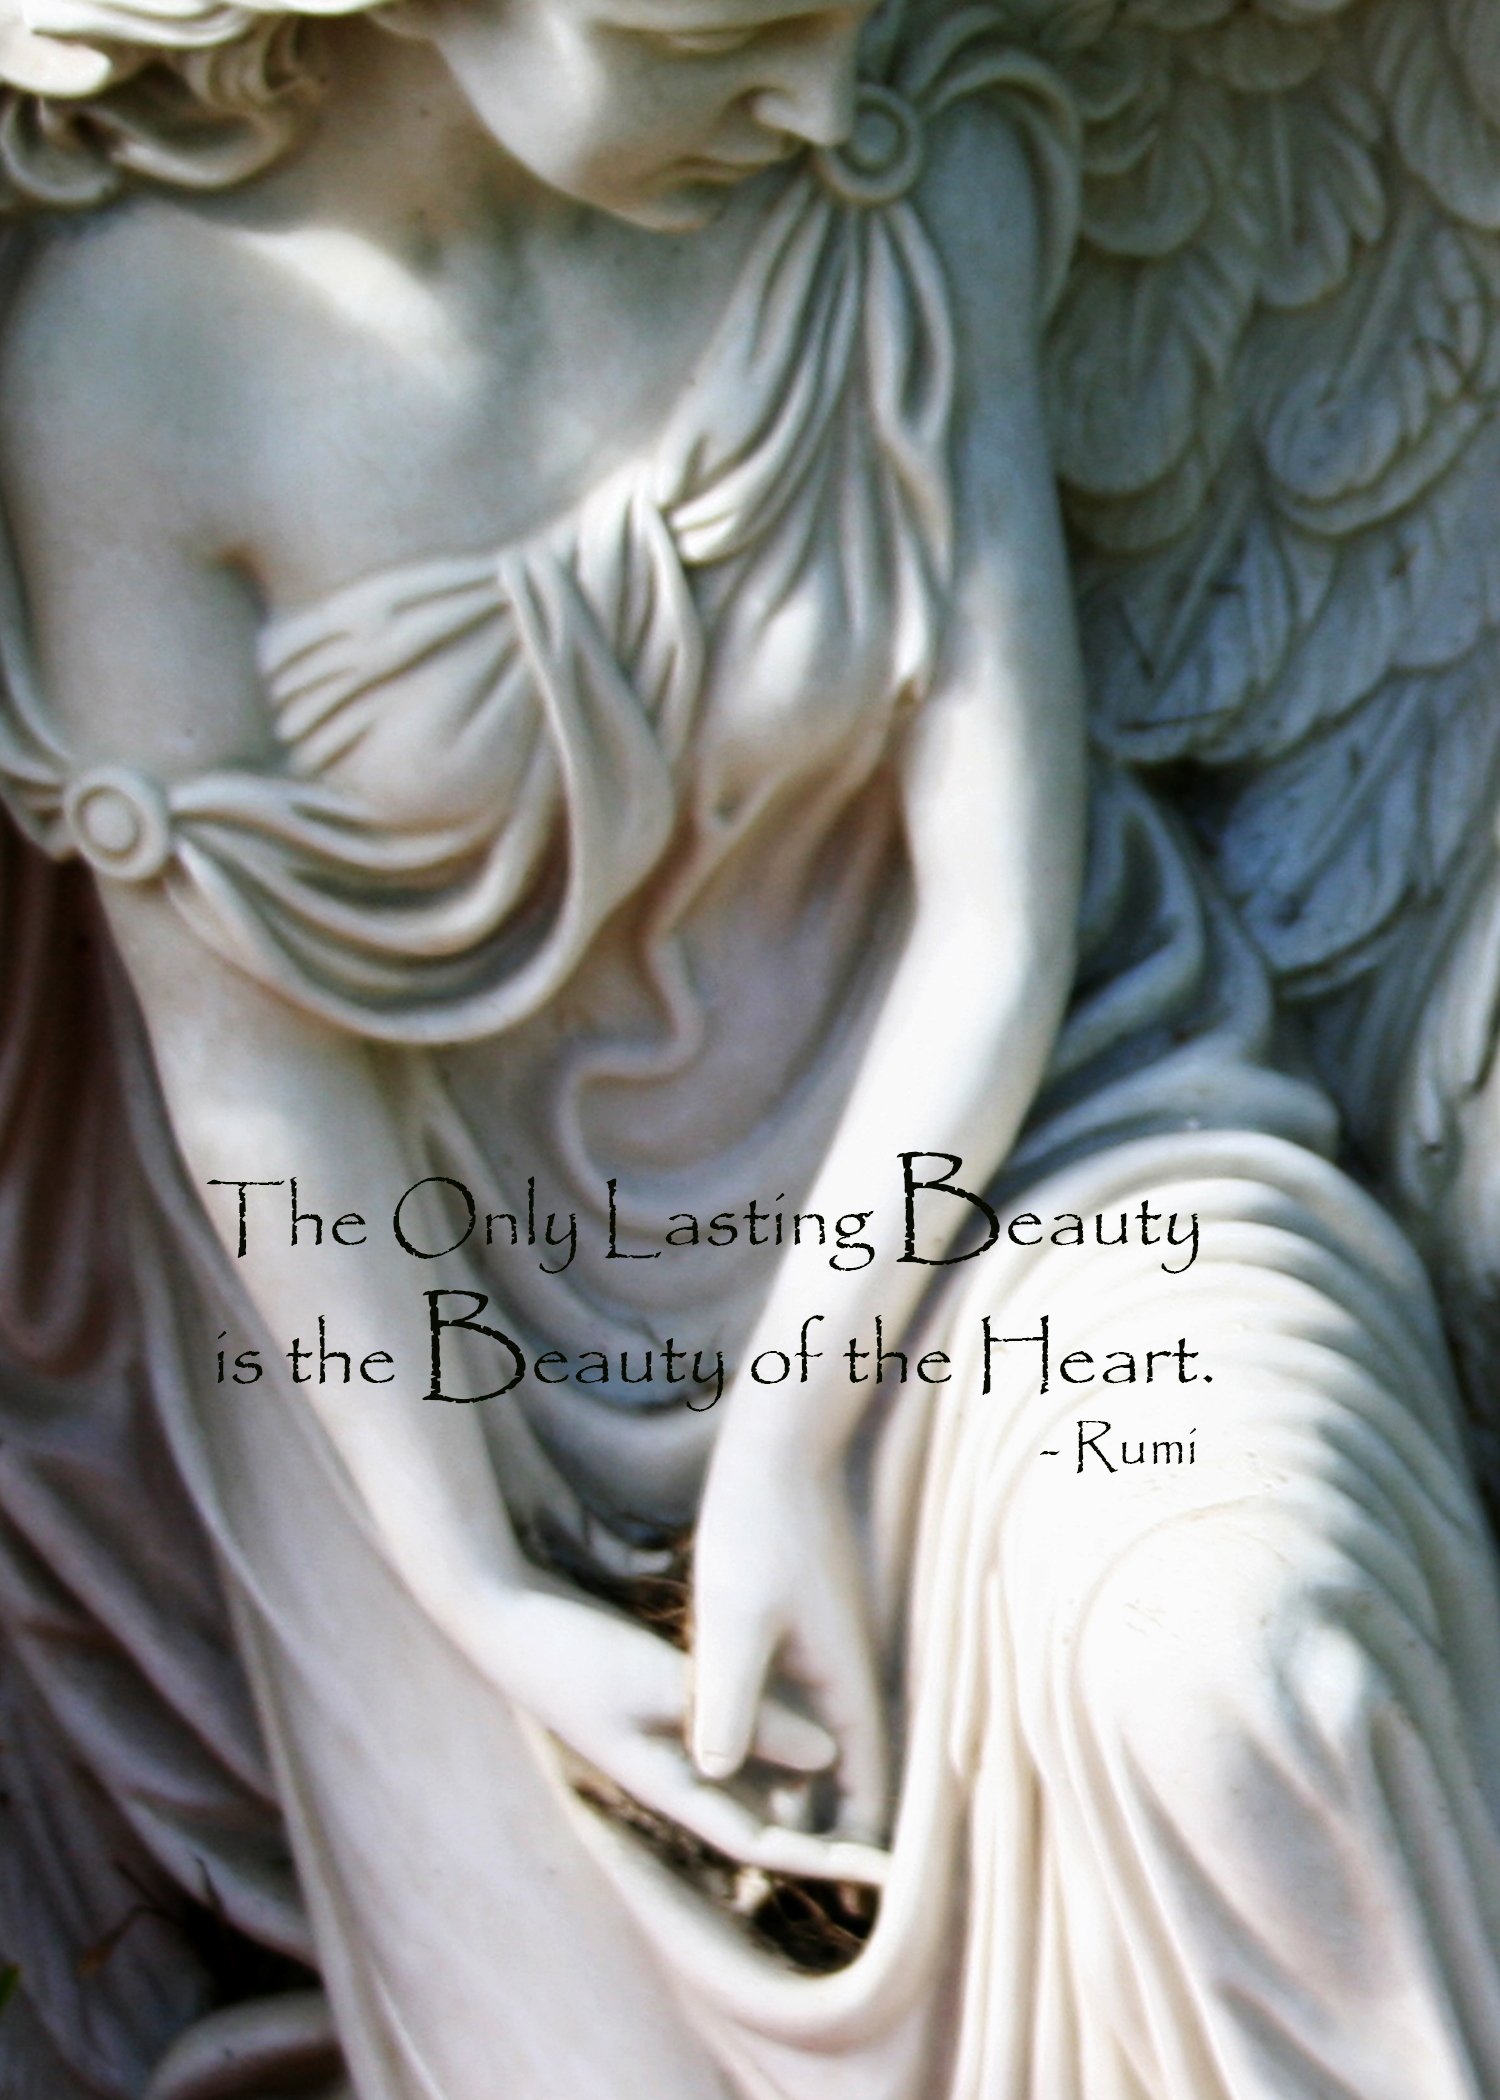 The Only Lasting Beauty (Rumi Quote) - Massimo's Angel